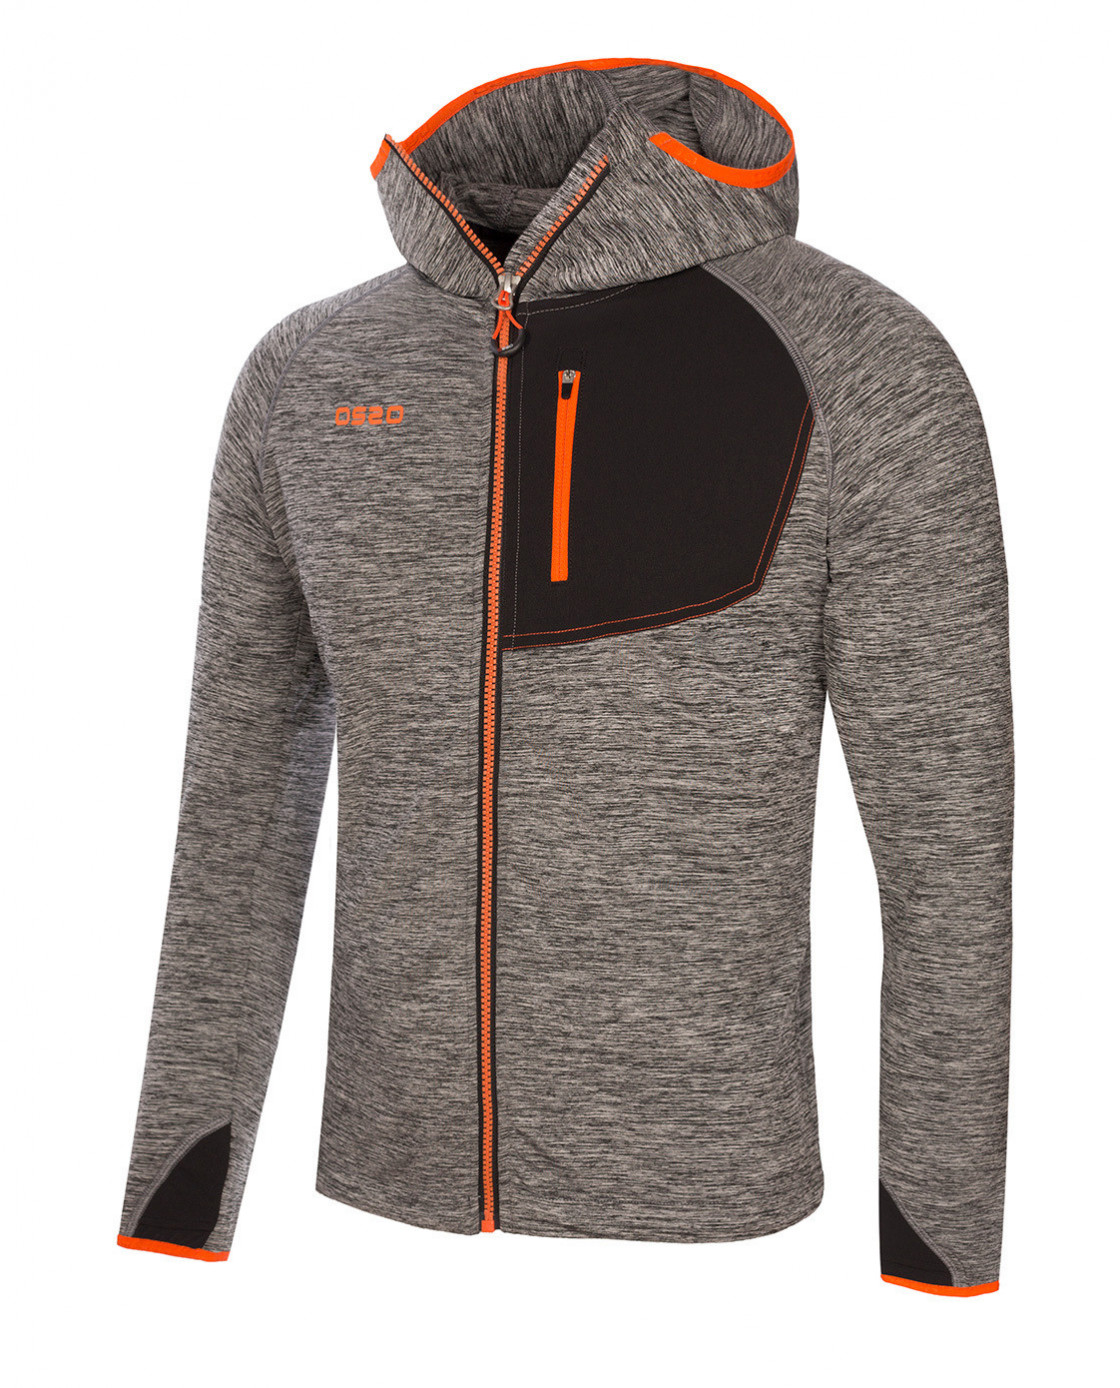 Ace Jacket Gris Frontal